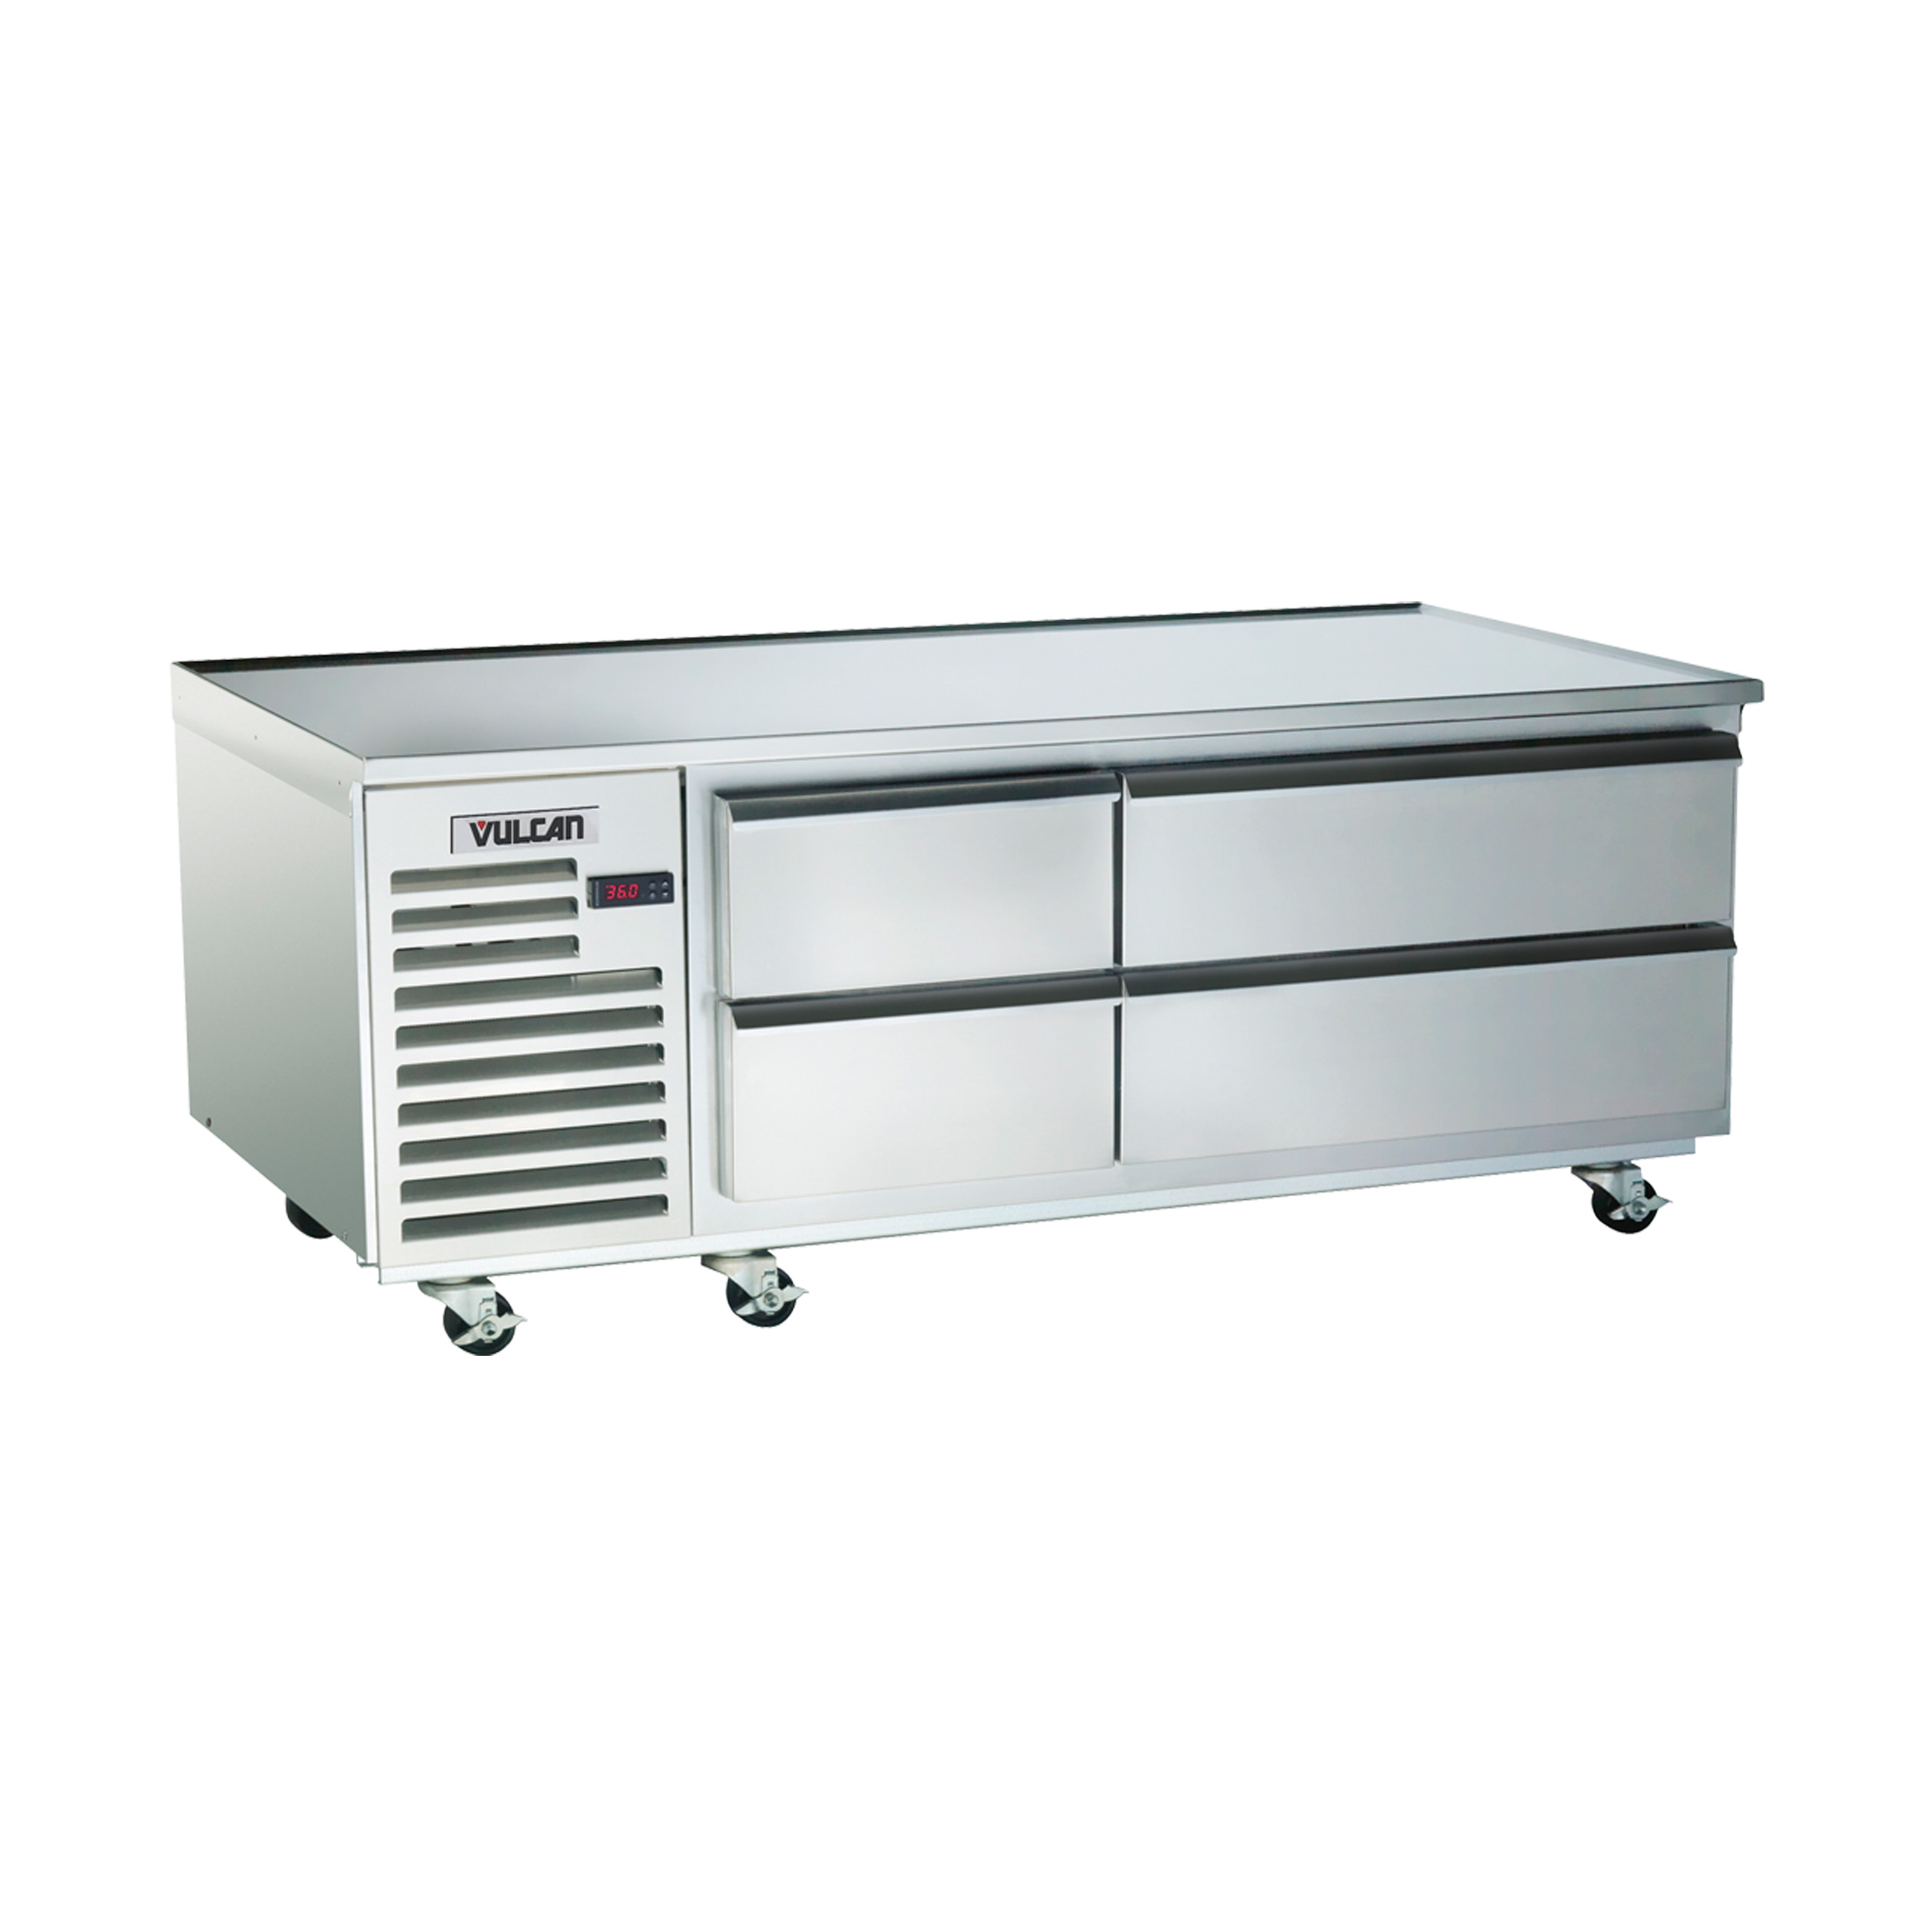 Vulcan ARS96 equipment stand, refrigerated base